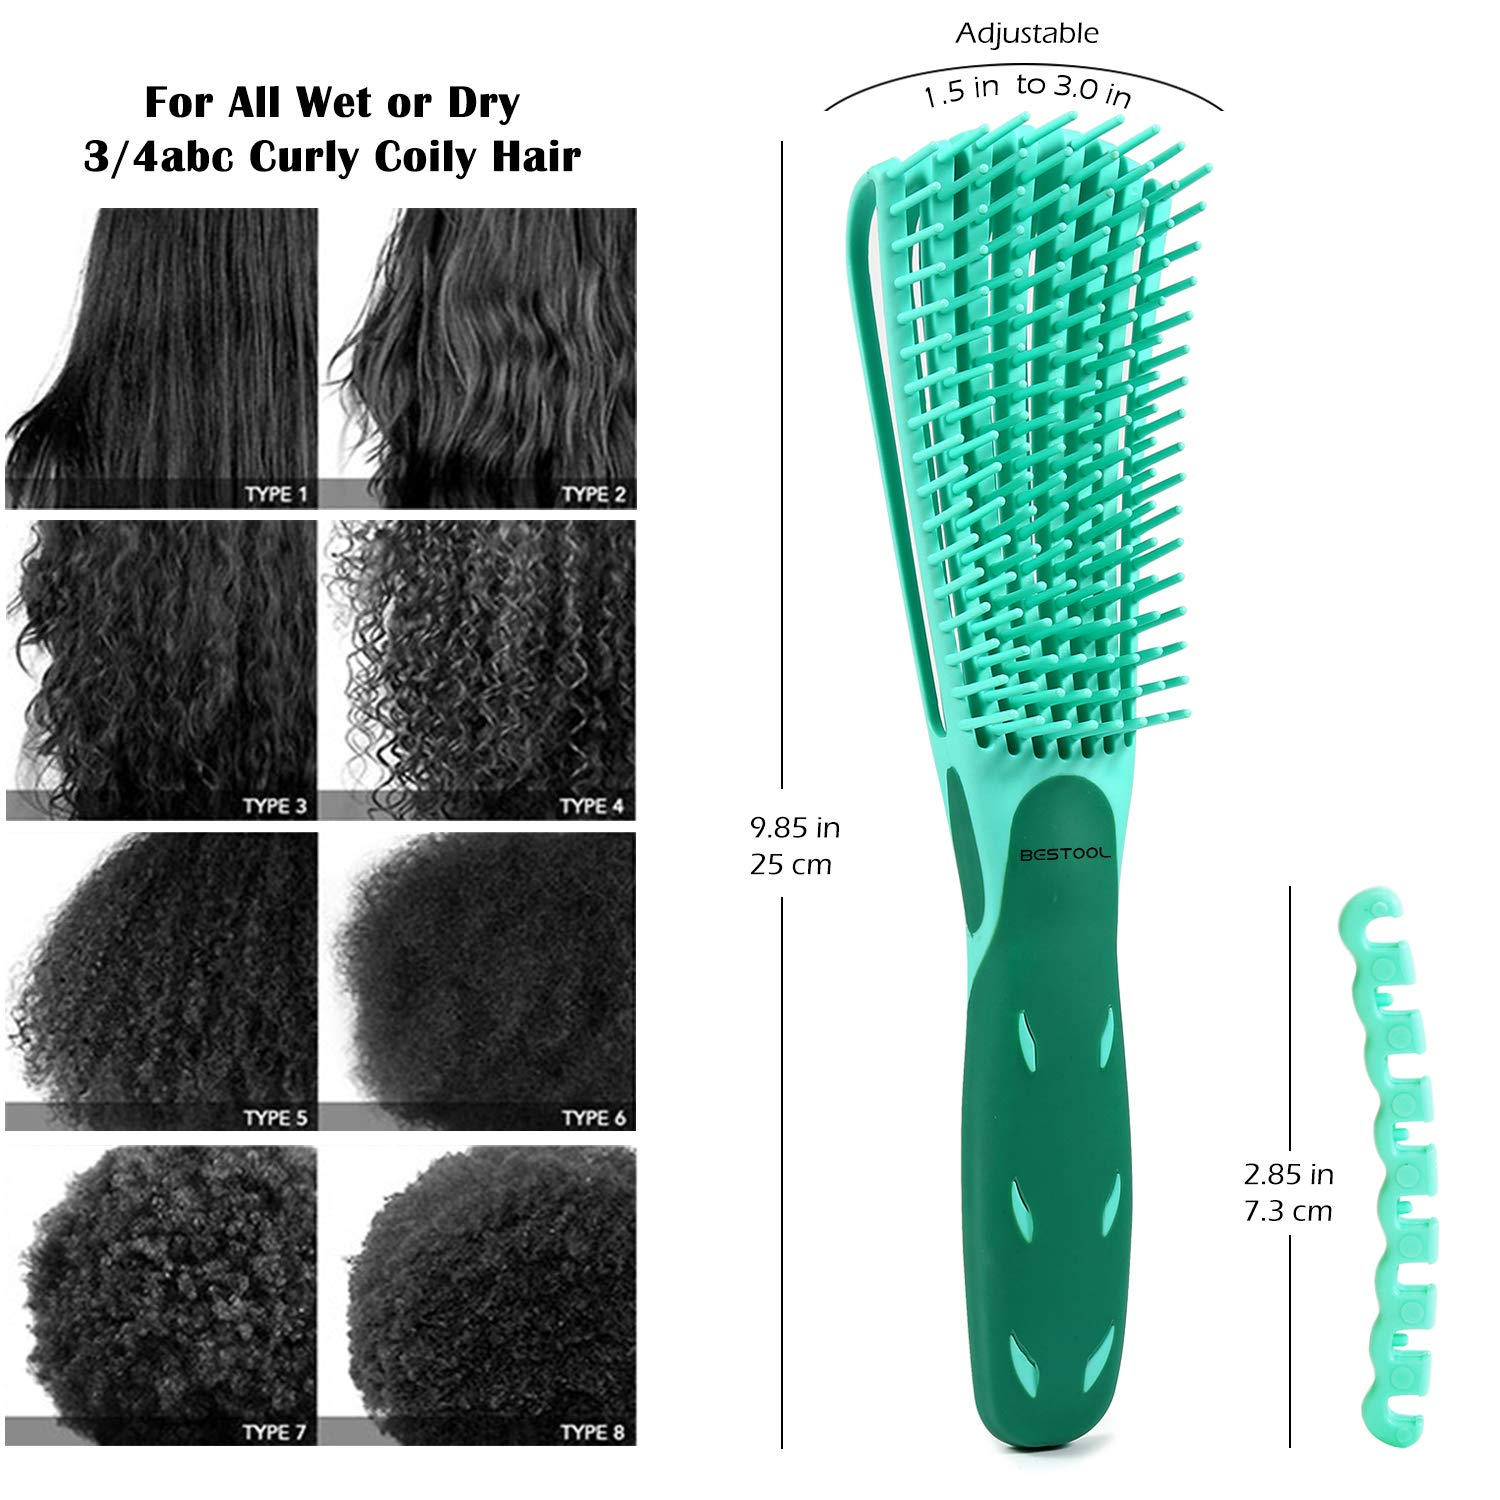 BESTOOL Detangling Brush for Black Natural Hair, Detangler Brush for Natural Black Hair Curly Hair Afro 3/4abc Texture, Faster n Easier Detangle Wet or Dry Hair with No Pain (Green)